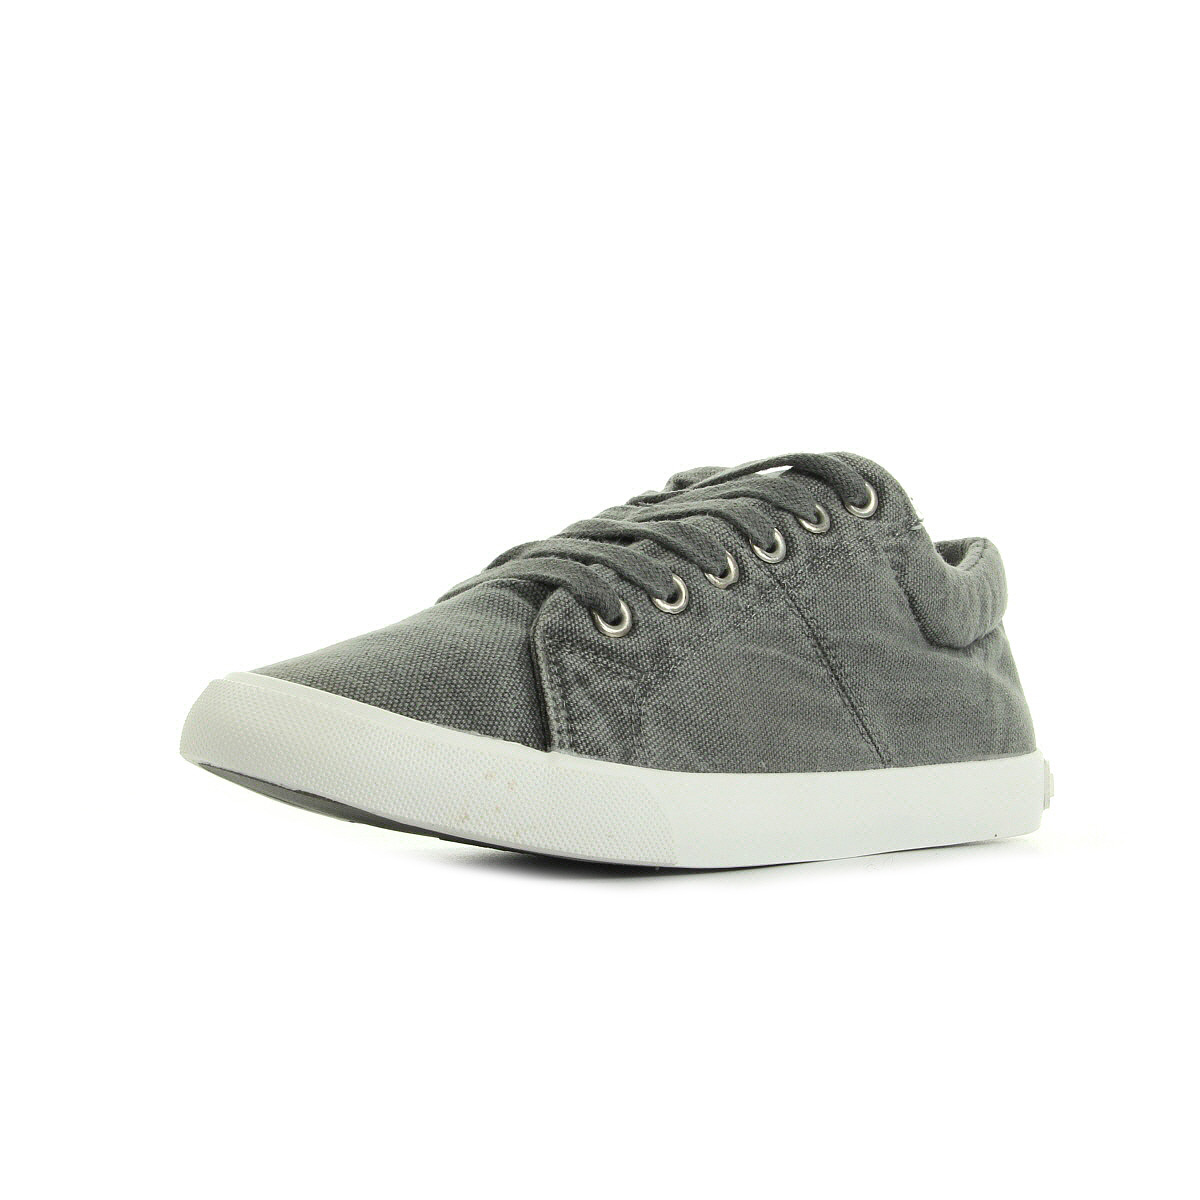 Rocket Dog Campo Beach Canvas Grey gris - Chaussures Baskets basses Femme